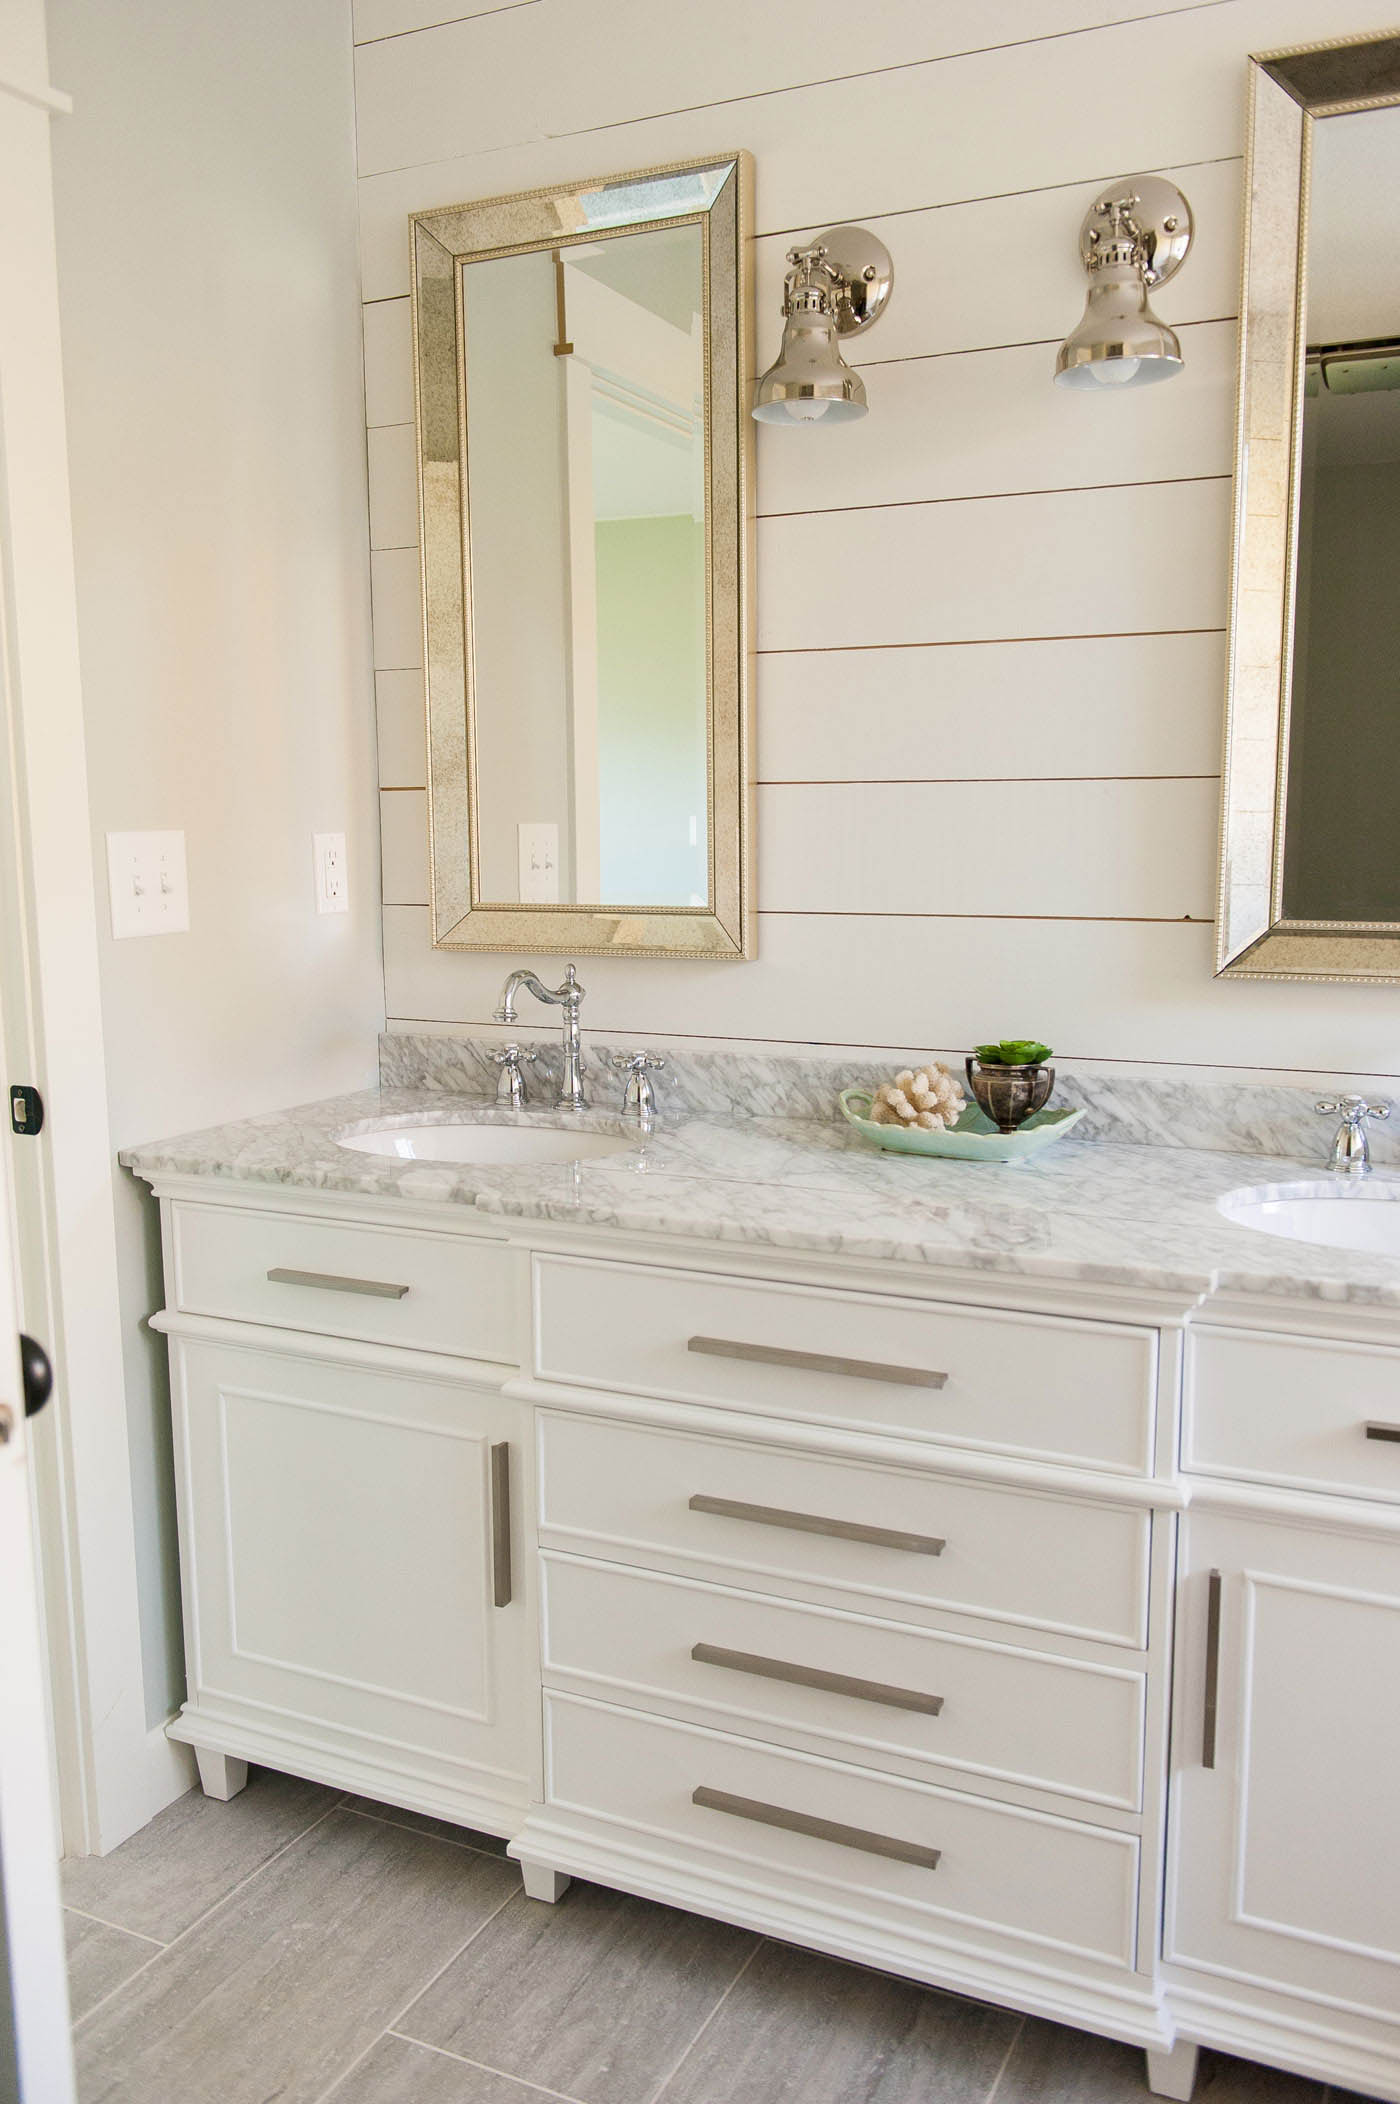 Bathroom Vanity Plans: The Ultimate Guide To Buying A Bathroom Vanity